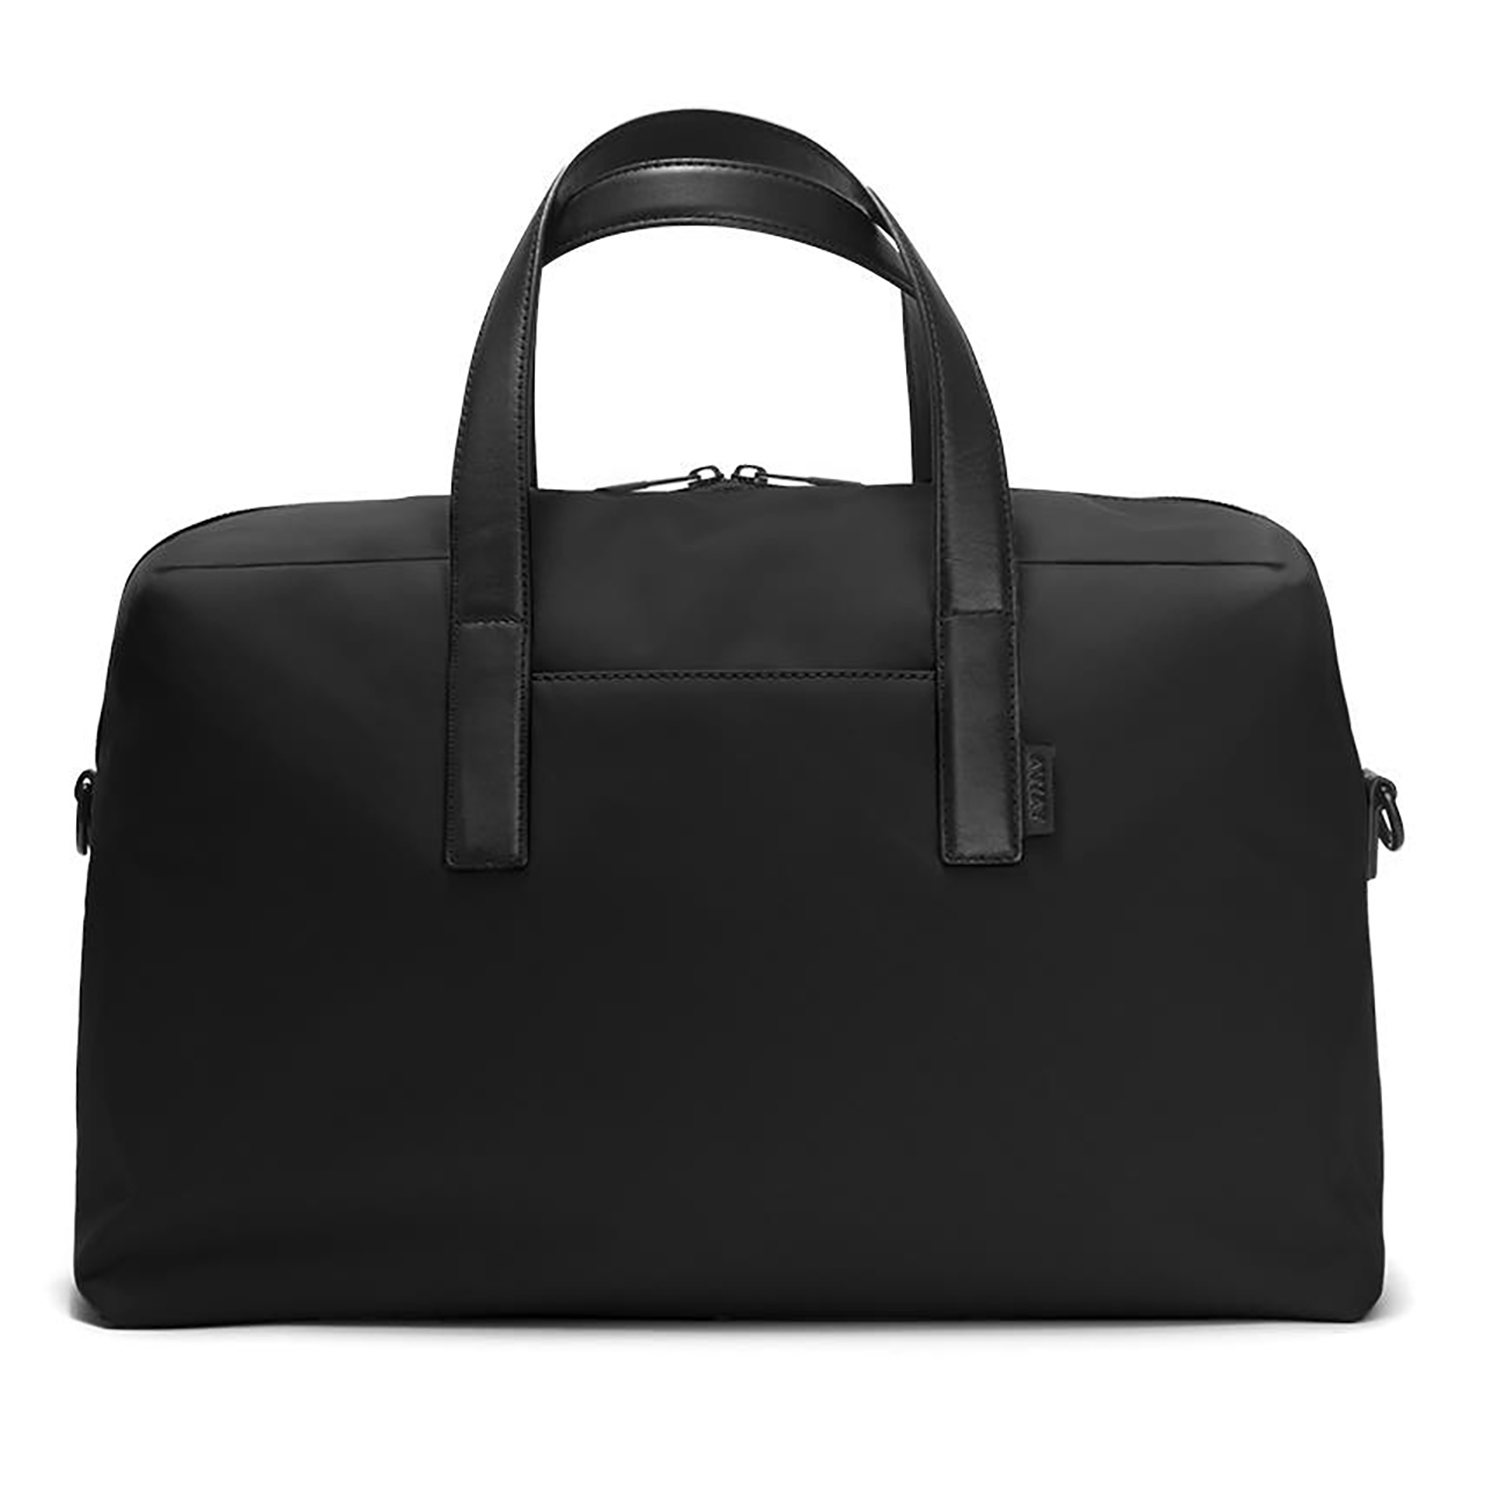 Best Gifts for Men: Away's The Everywhere Bag